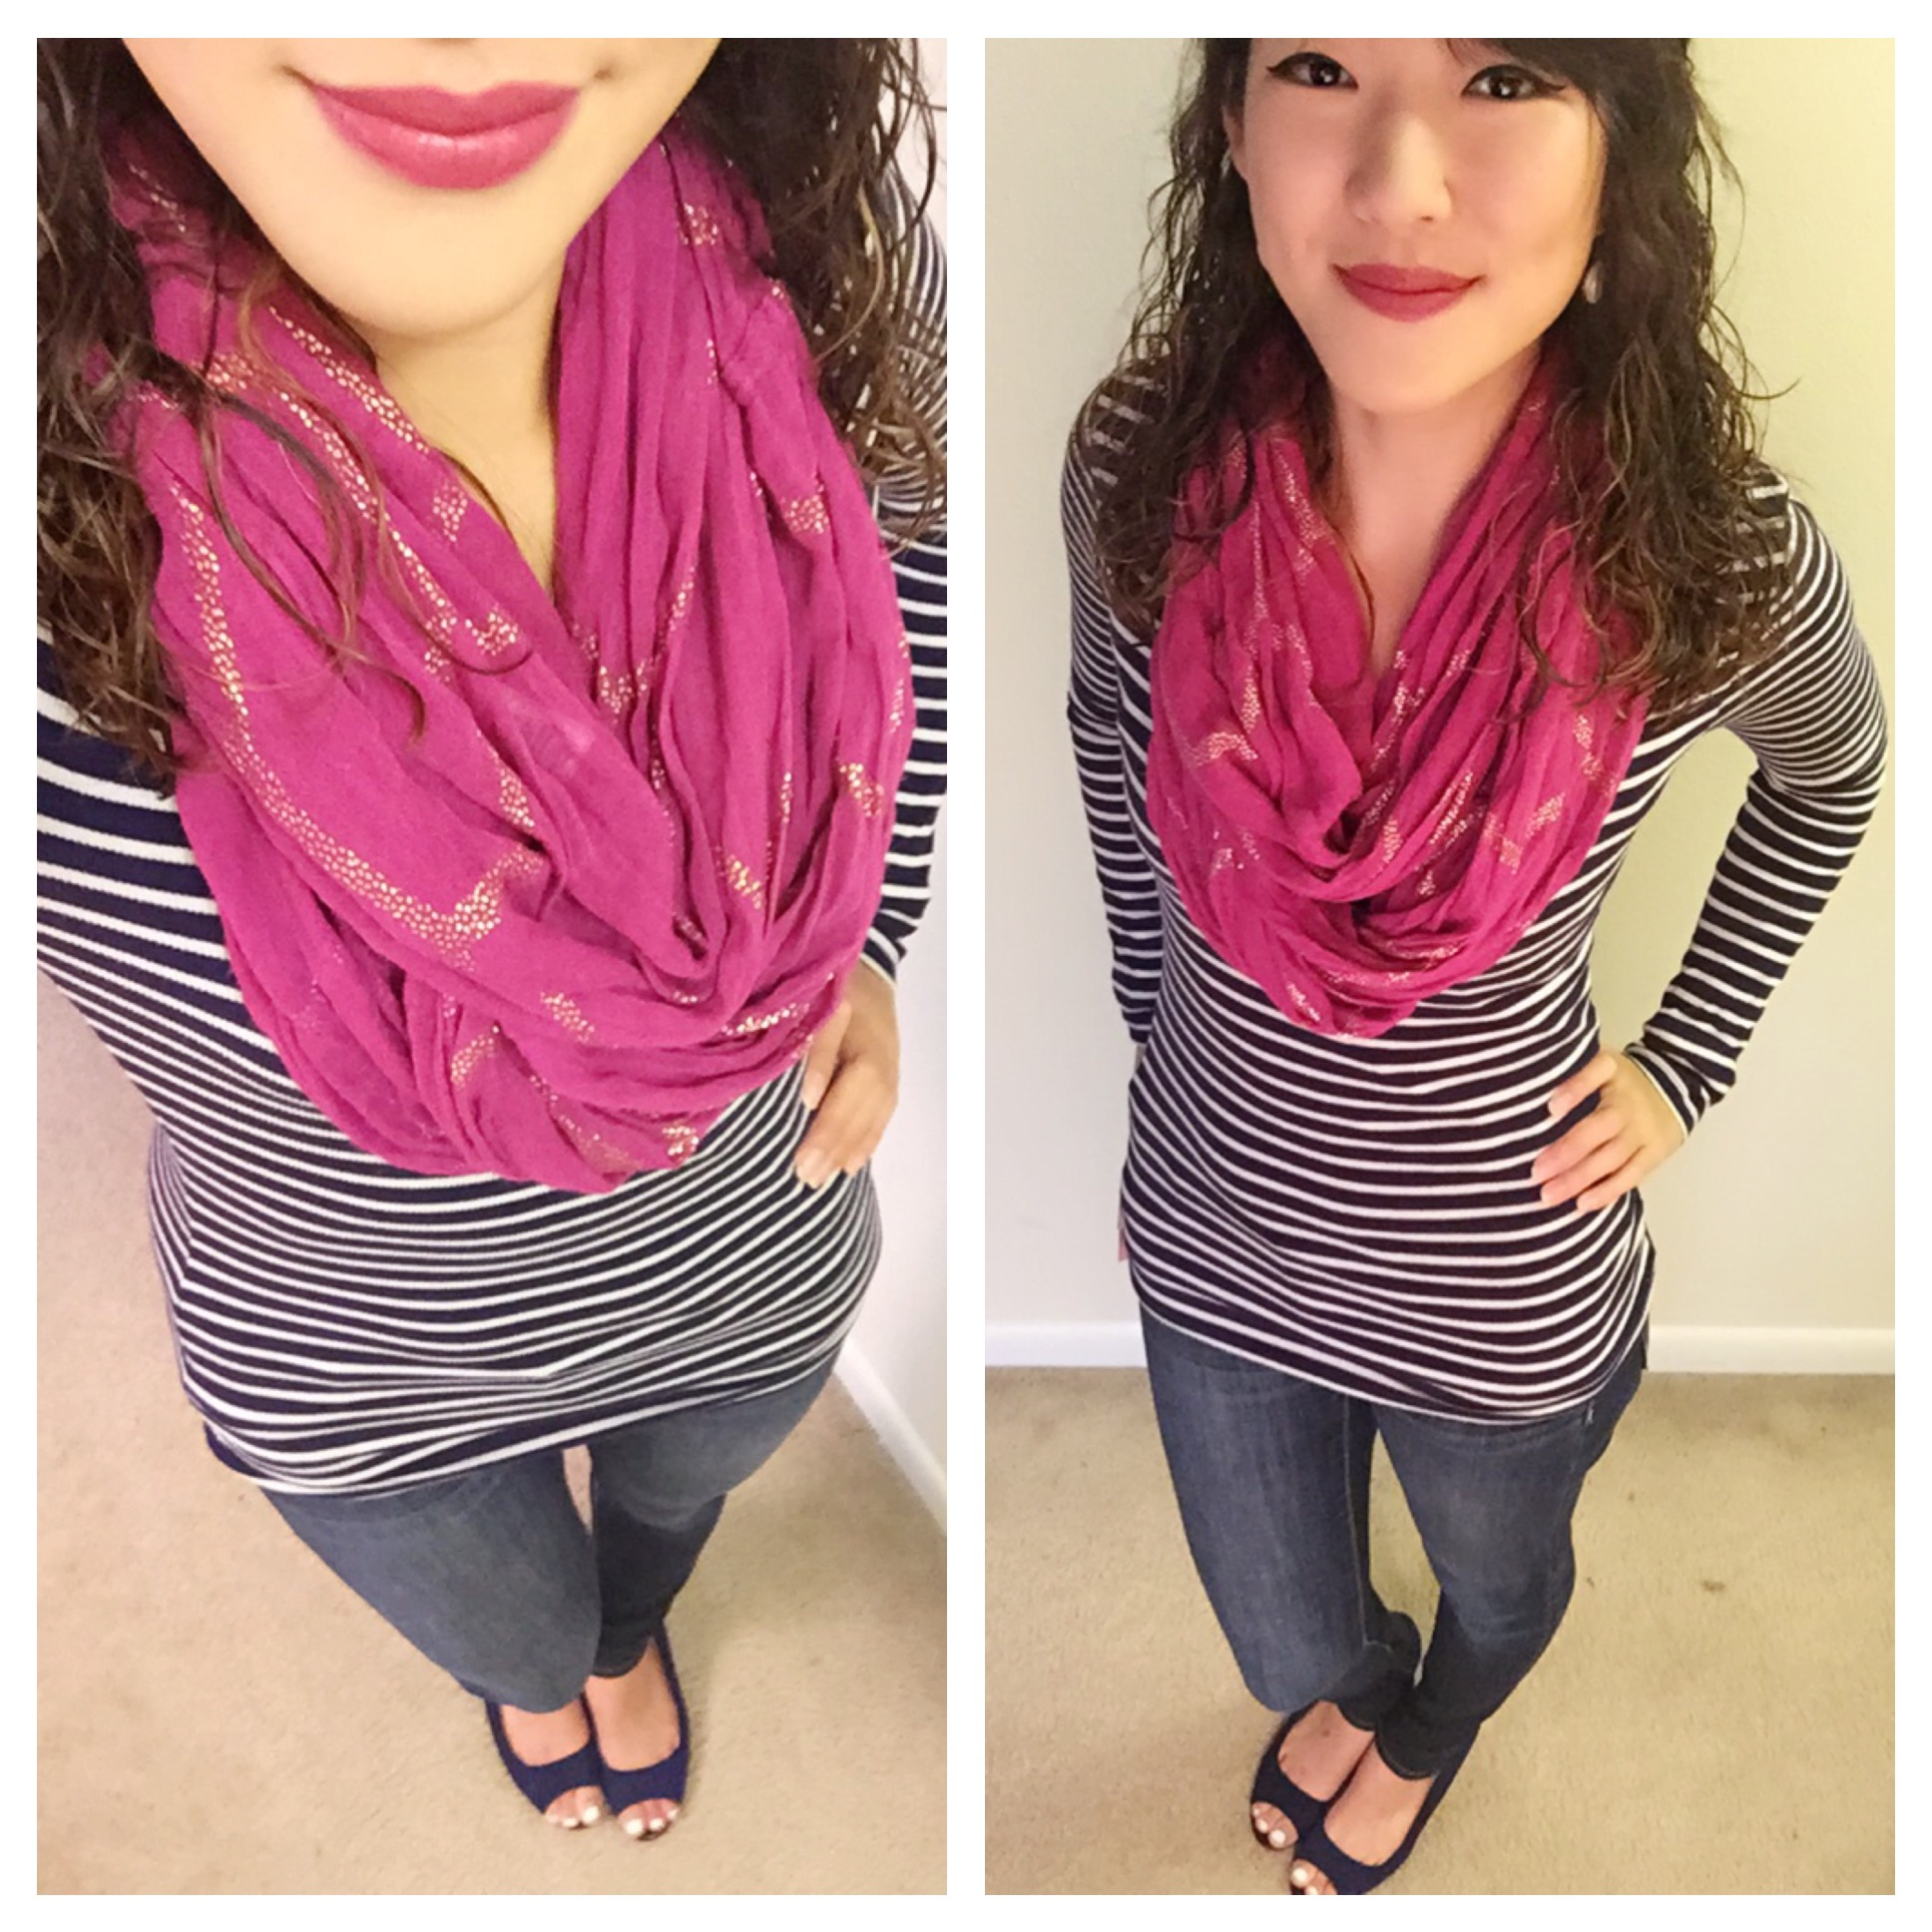 Shirt: Old Navy / Scarf: Target / Jeans: American Eagle / Shoes: Payless / Earrings: Charming Charlie's / Lipstick: Bellapierre